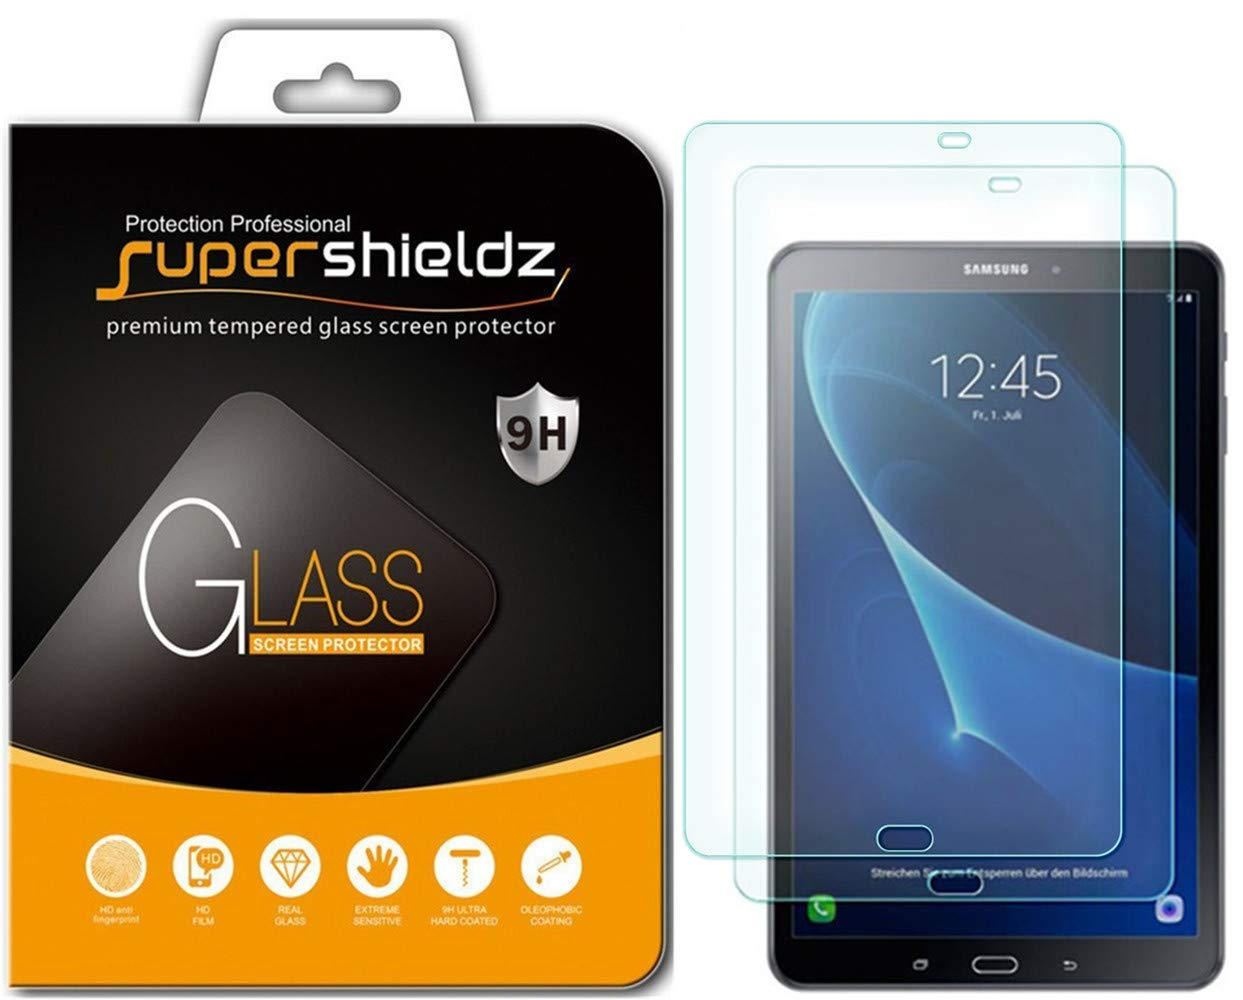 [2-Pack] Supershieldz for Samsung Galaxy Tab A 10.1 (SM-T580/T587 Model 2016 Release) Screen Protector, [Tempered Glass] Anti-Scratch, Bubble Free, Lifetime Replacement